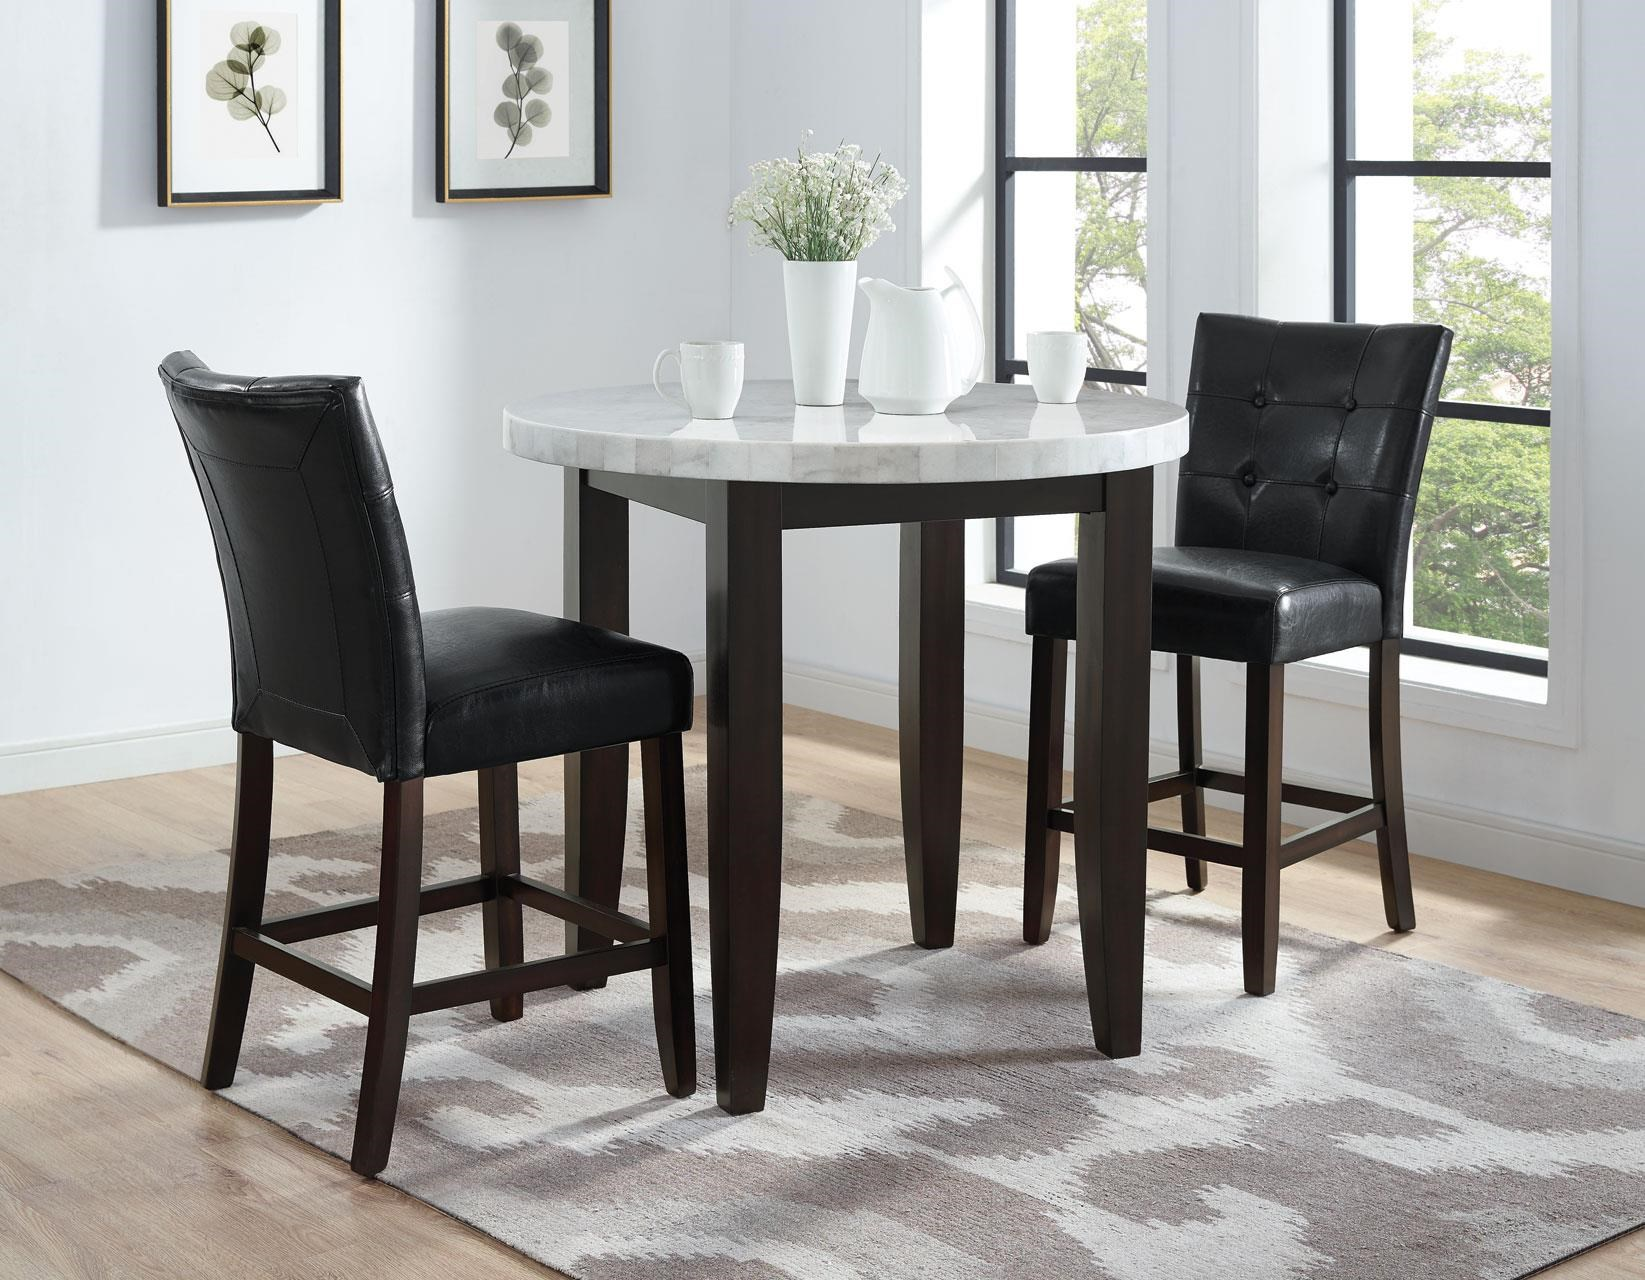 Courtland Franchesca 5-Piece Dining Set by Steve Silver at Morris Home